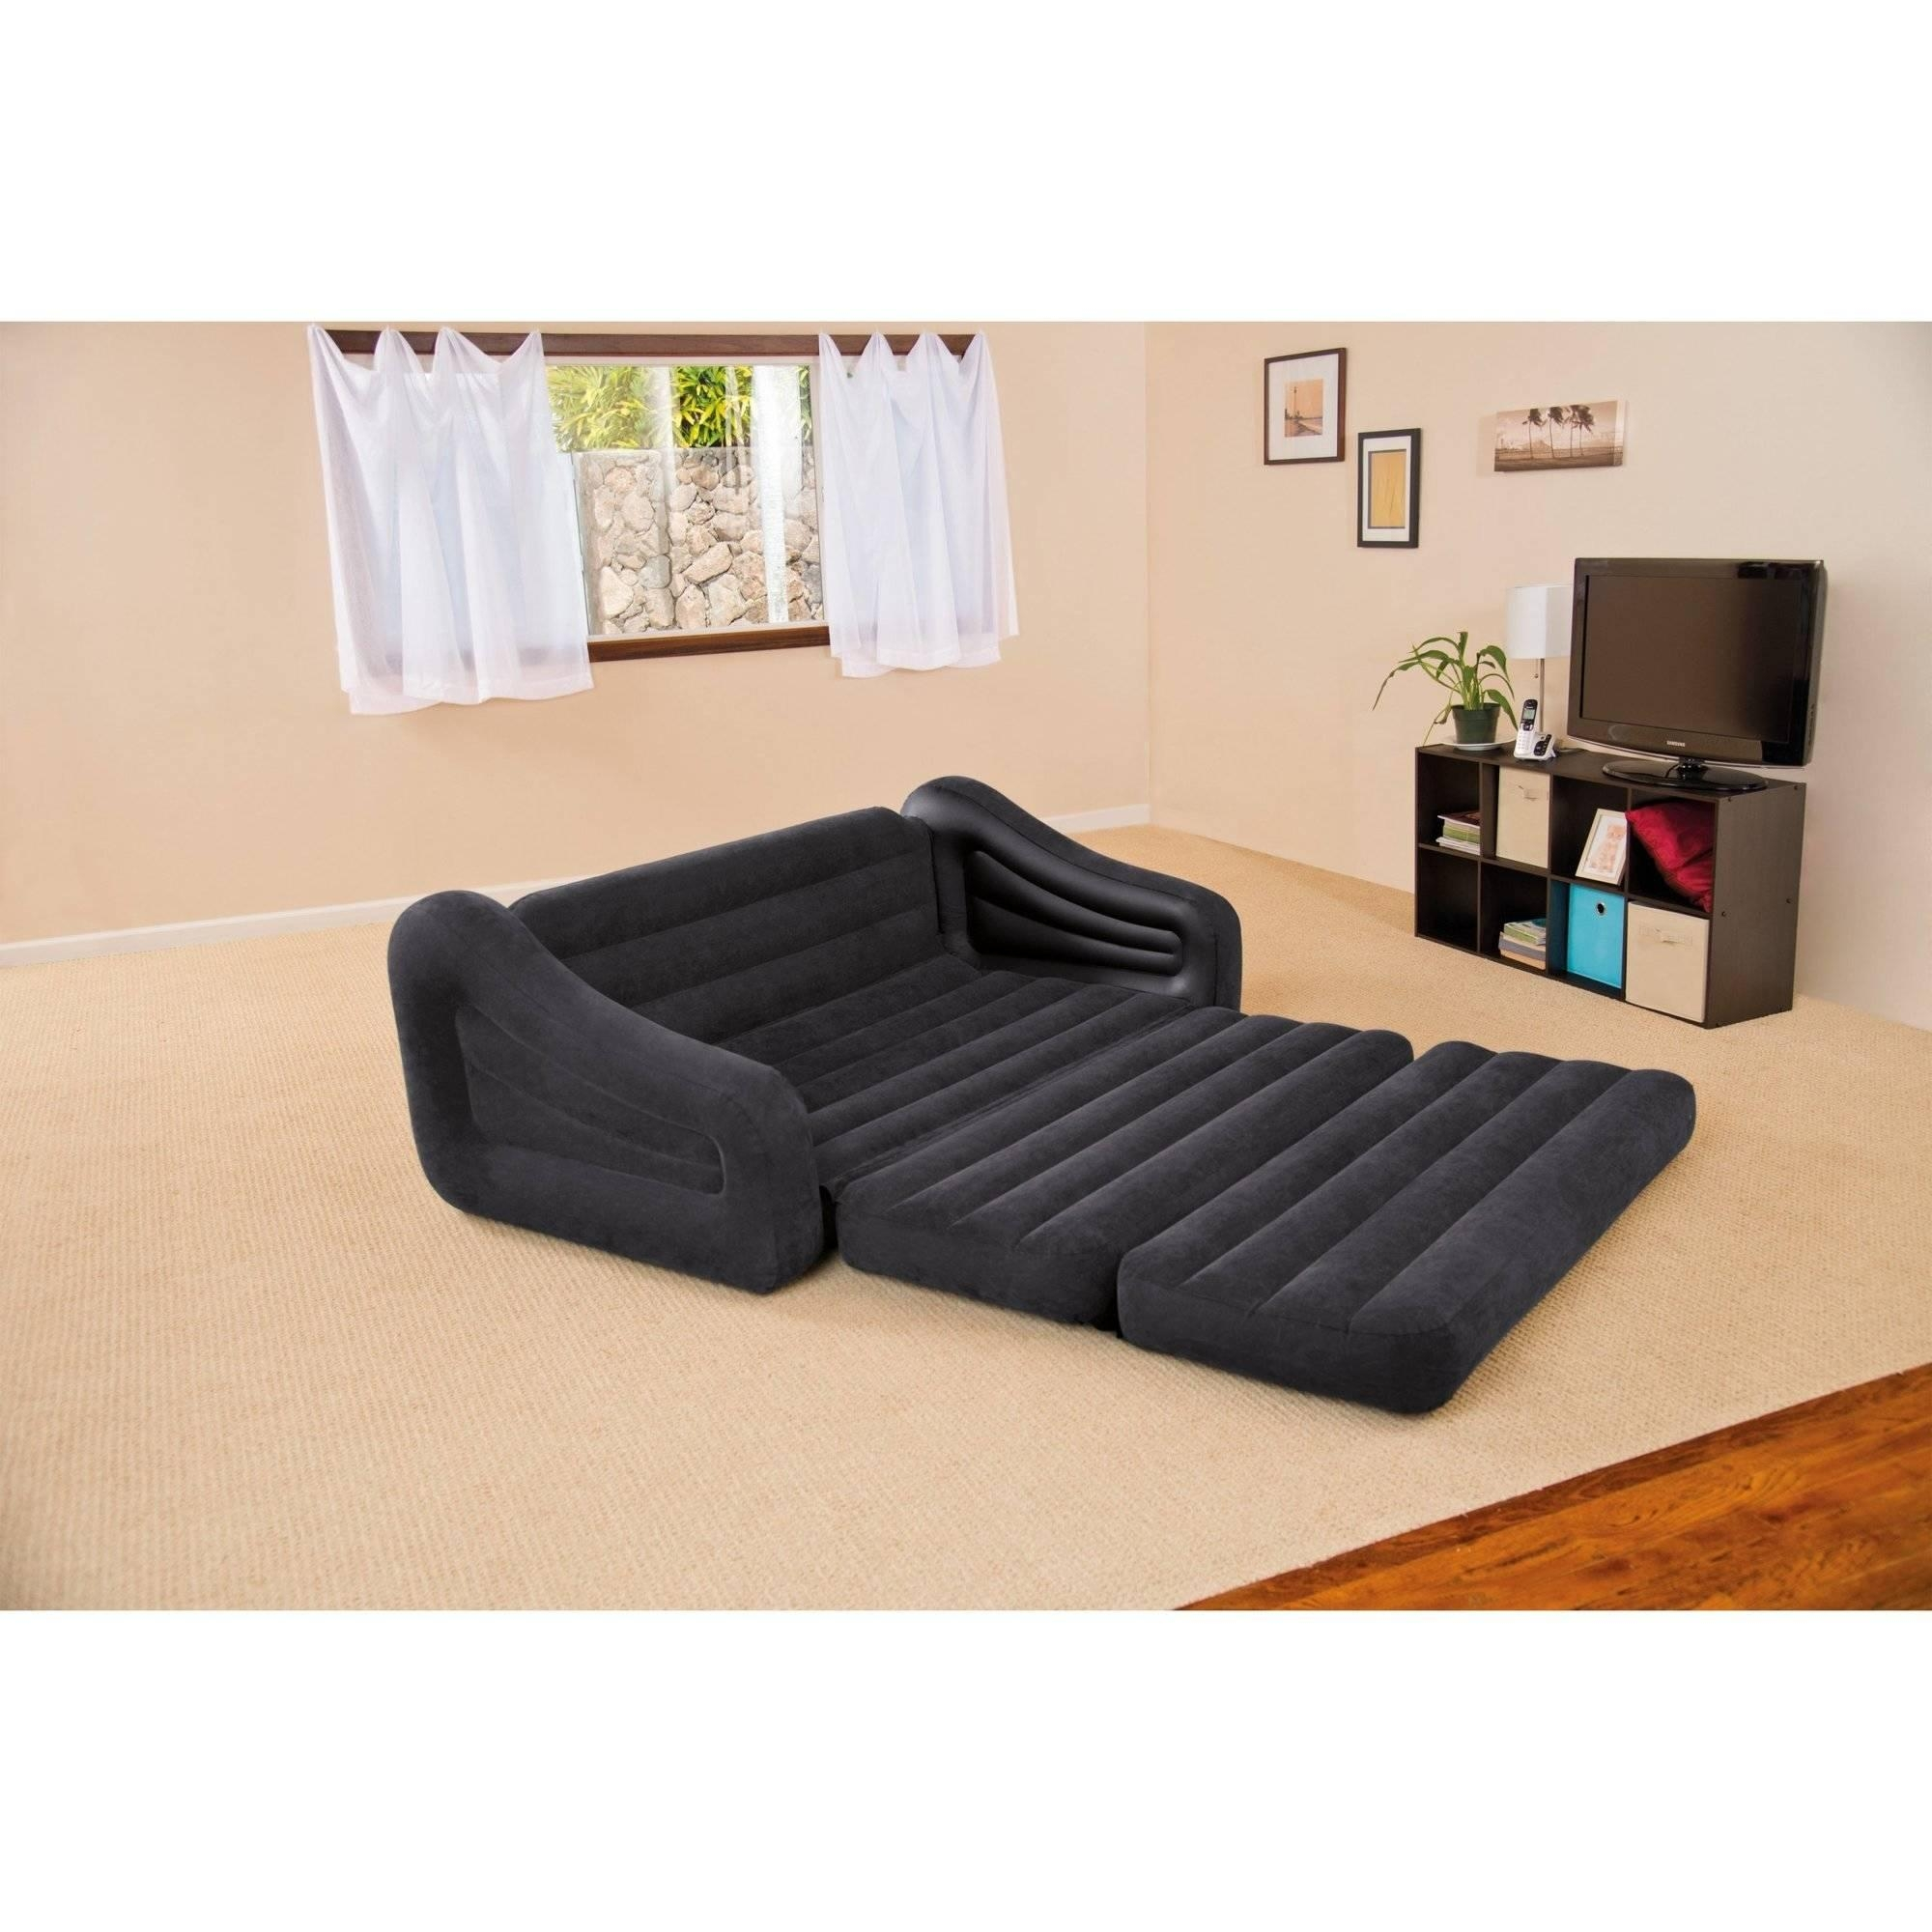 Intex Queen Inflatable Pull Out Sofa Bed – Walmart Regarding Pull Out Queen Size Bed Sofas (View 9 of 20)